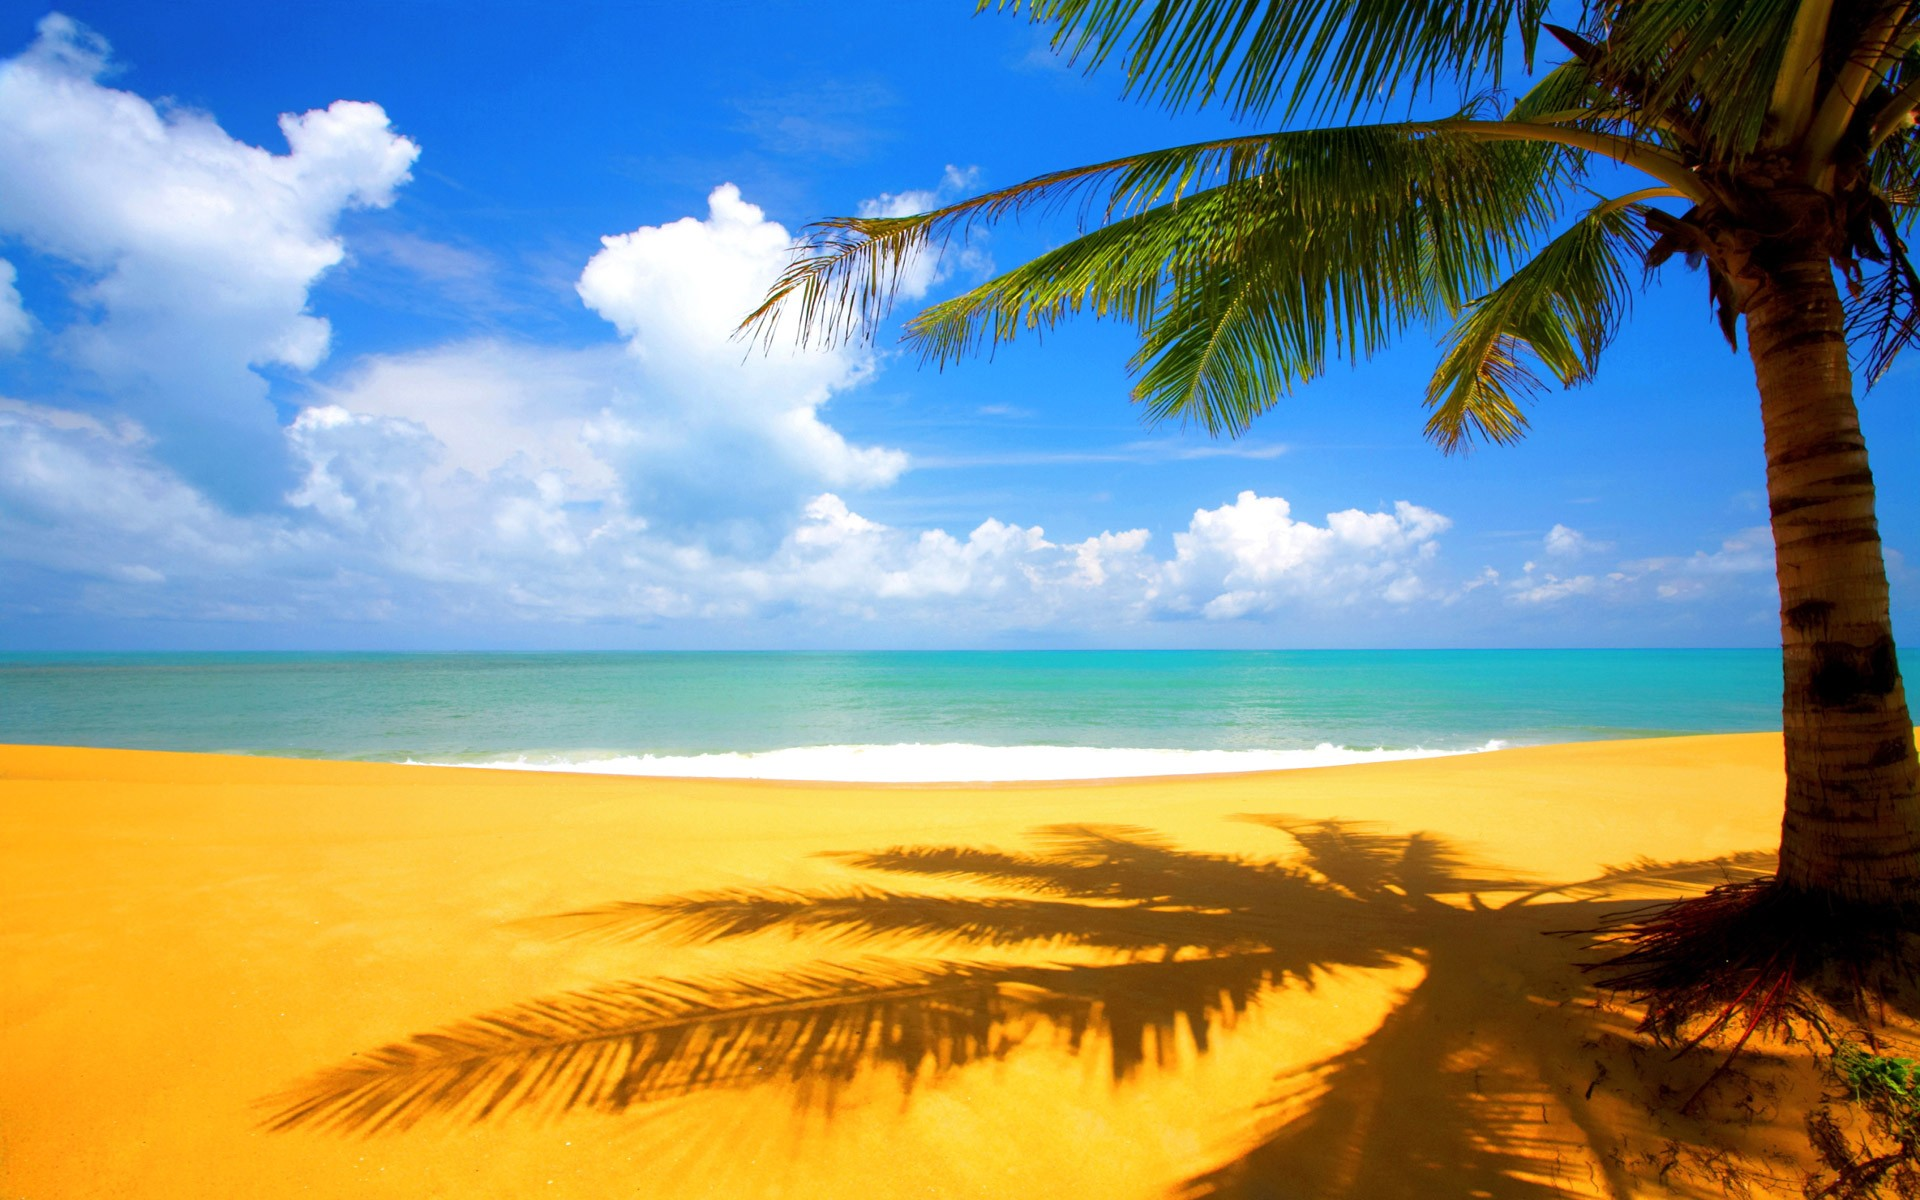 Hd Beach Desktop Backgrounds